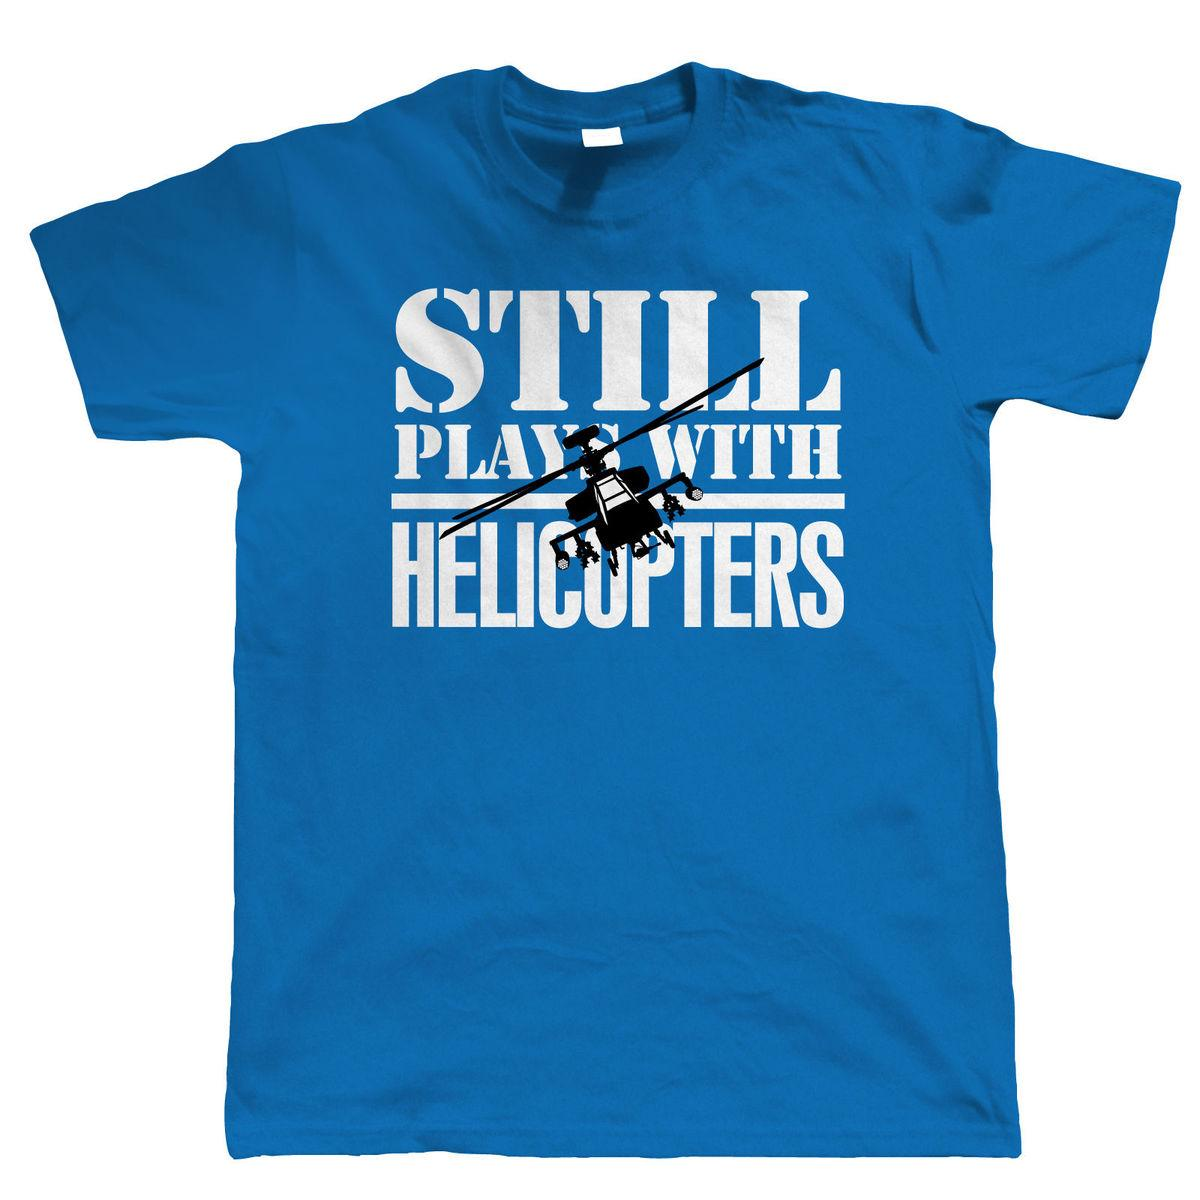 100% Cotton Print Summer Comfort Soft Still Plays With Helicopters Radio Control Helicopter Crew Neck Short-Sleeve Mens Shirt